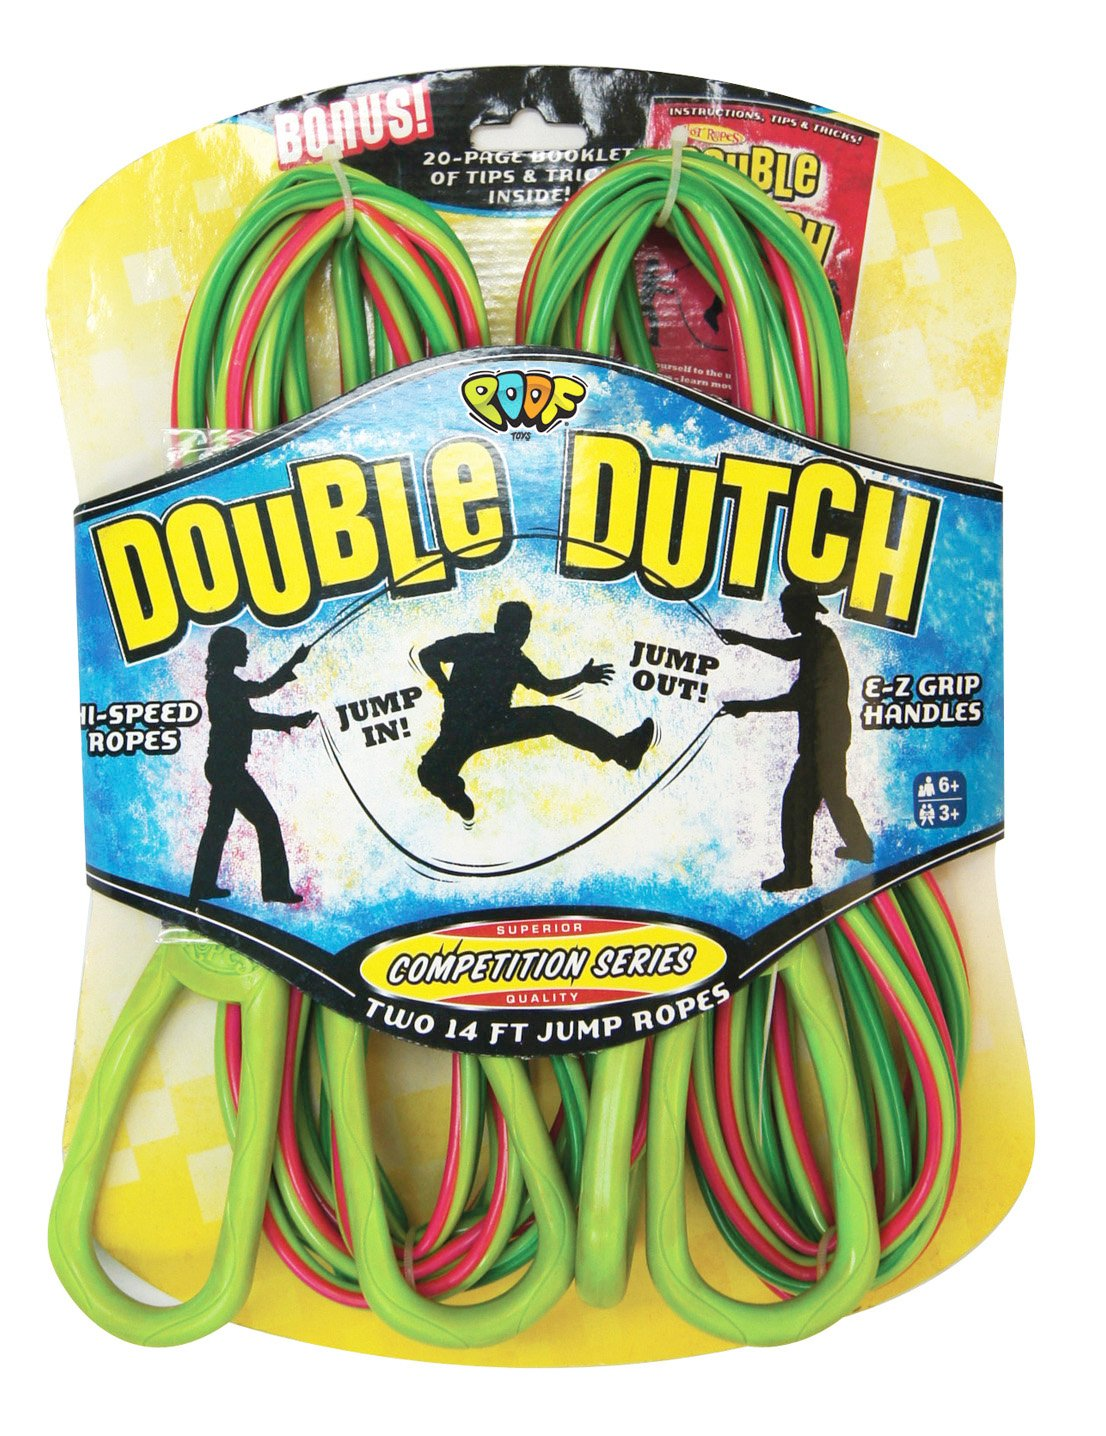 POOF Hot Ropes Double Dutch Jump Ropes